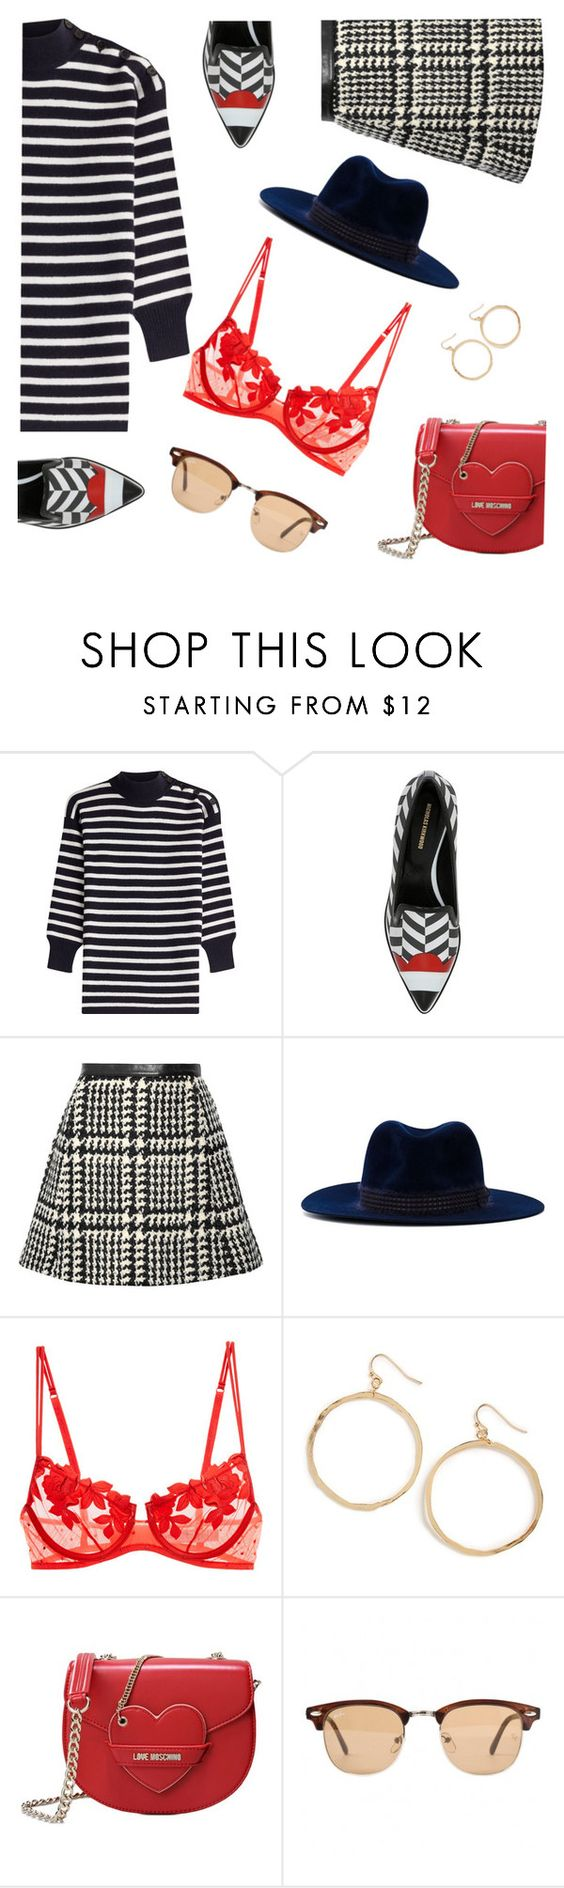 """City rush"" by oli2015 ❤ liked on Polyvore featuring Alexander McQueen, Nicholas Kirkwood, Jill Stuart, Filù Hats, La Perla, BP., Love Moschino, Ray-Ban, women's clothing and women"